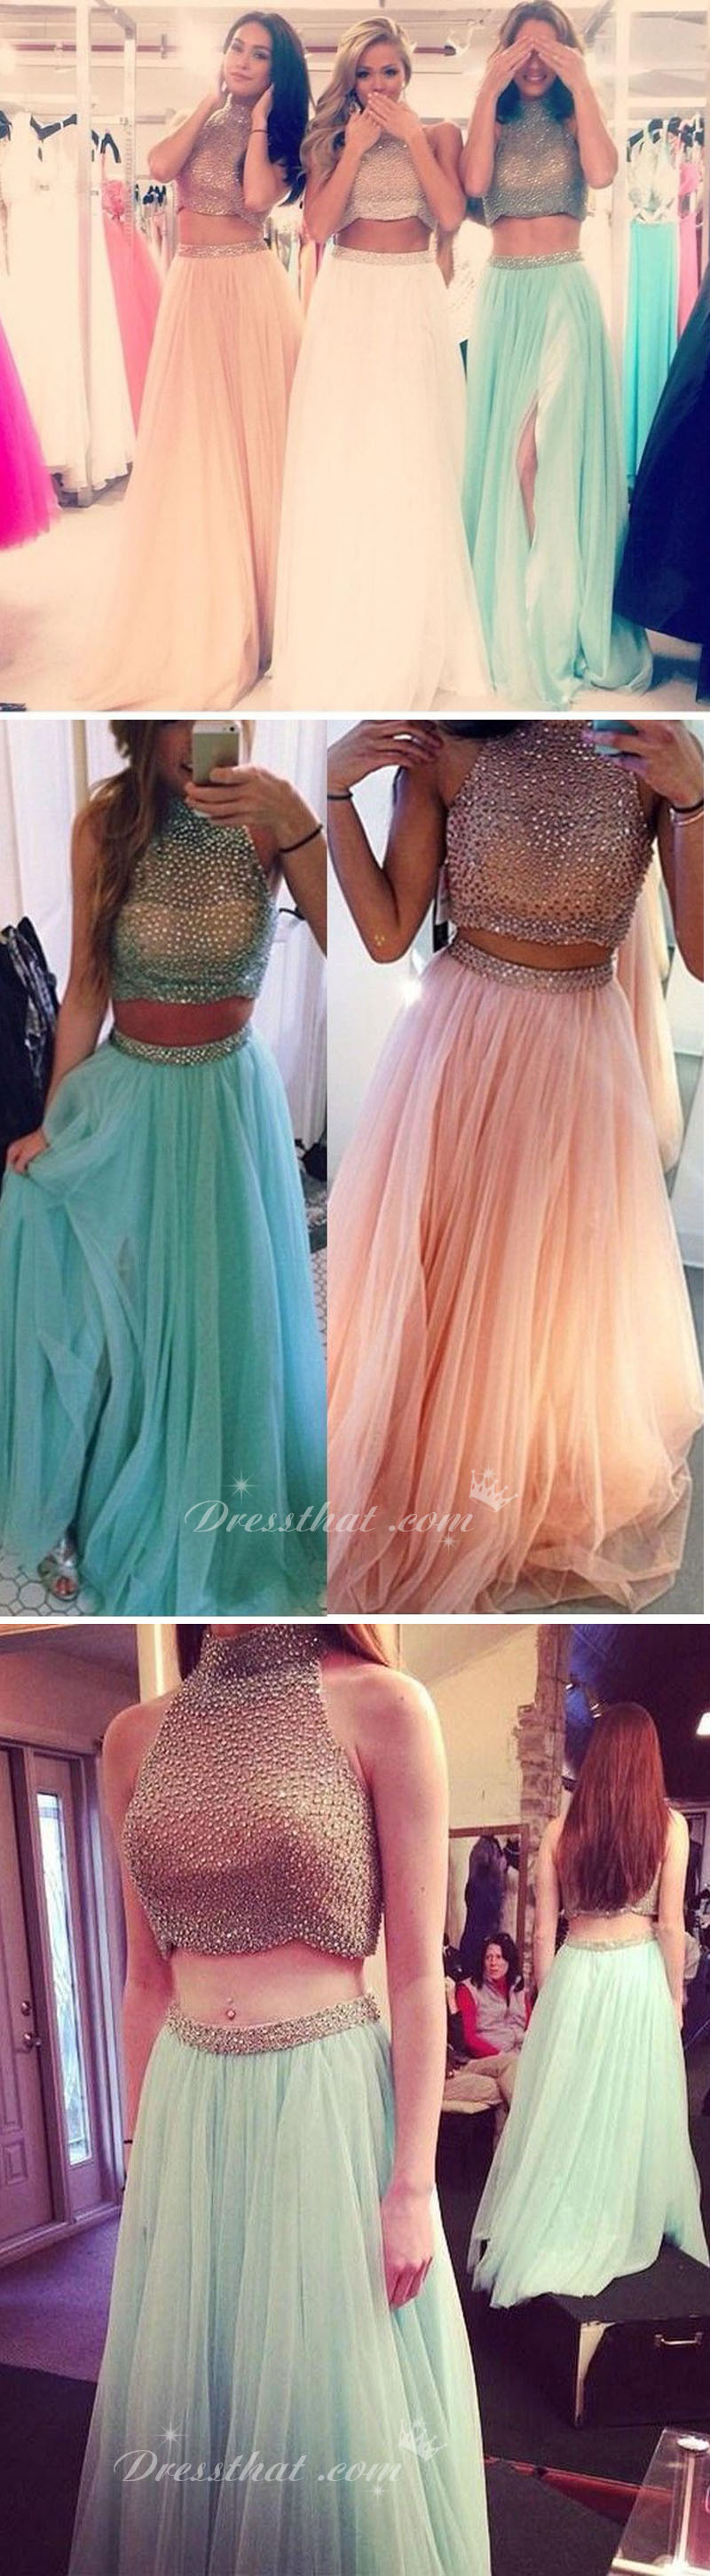 Pin by leeann jcollins on dresses pinterest high collar prom